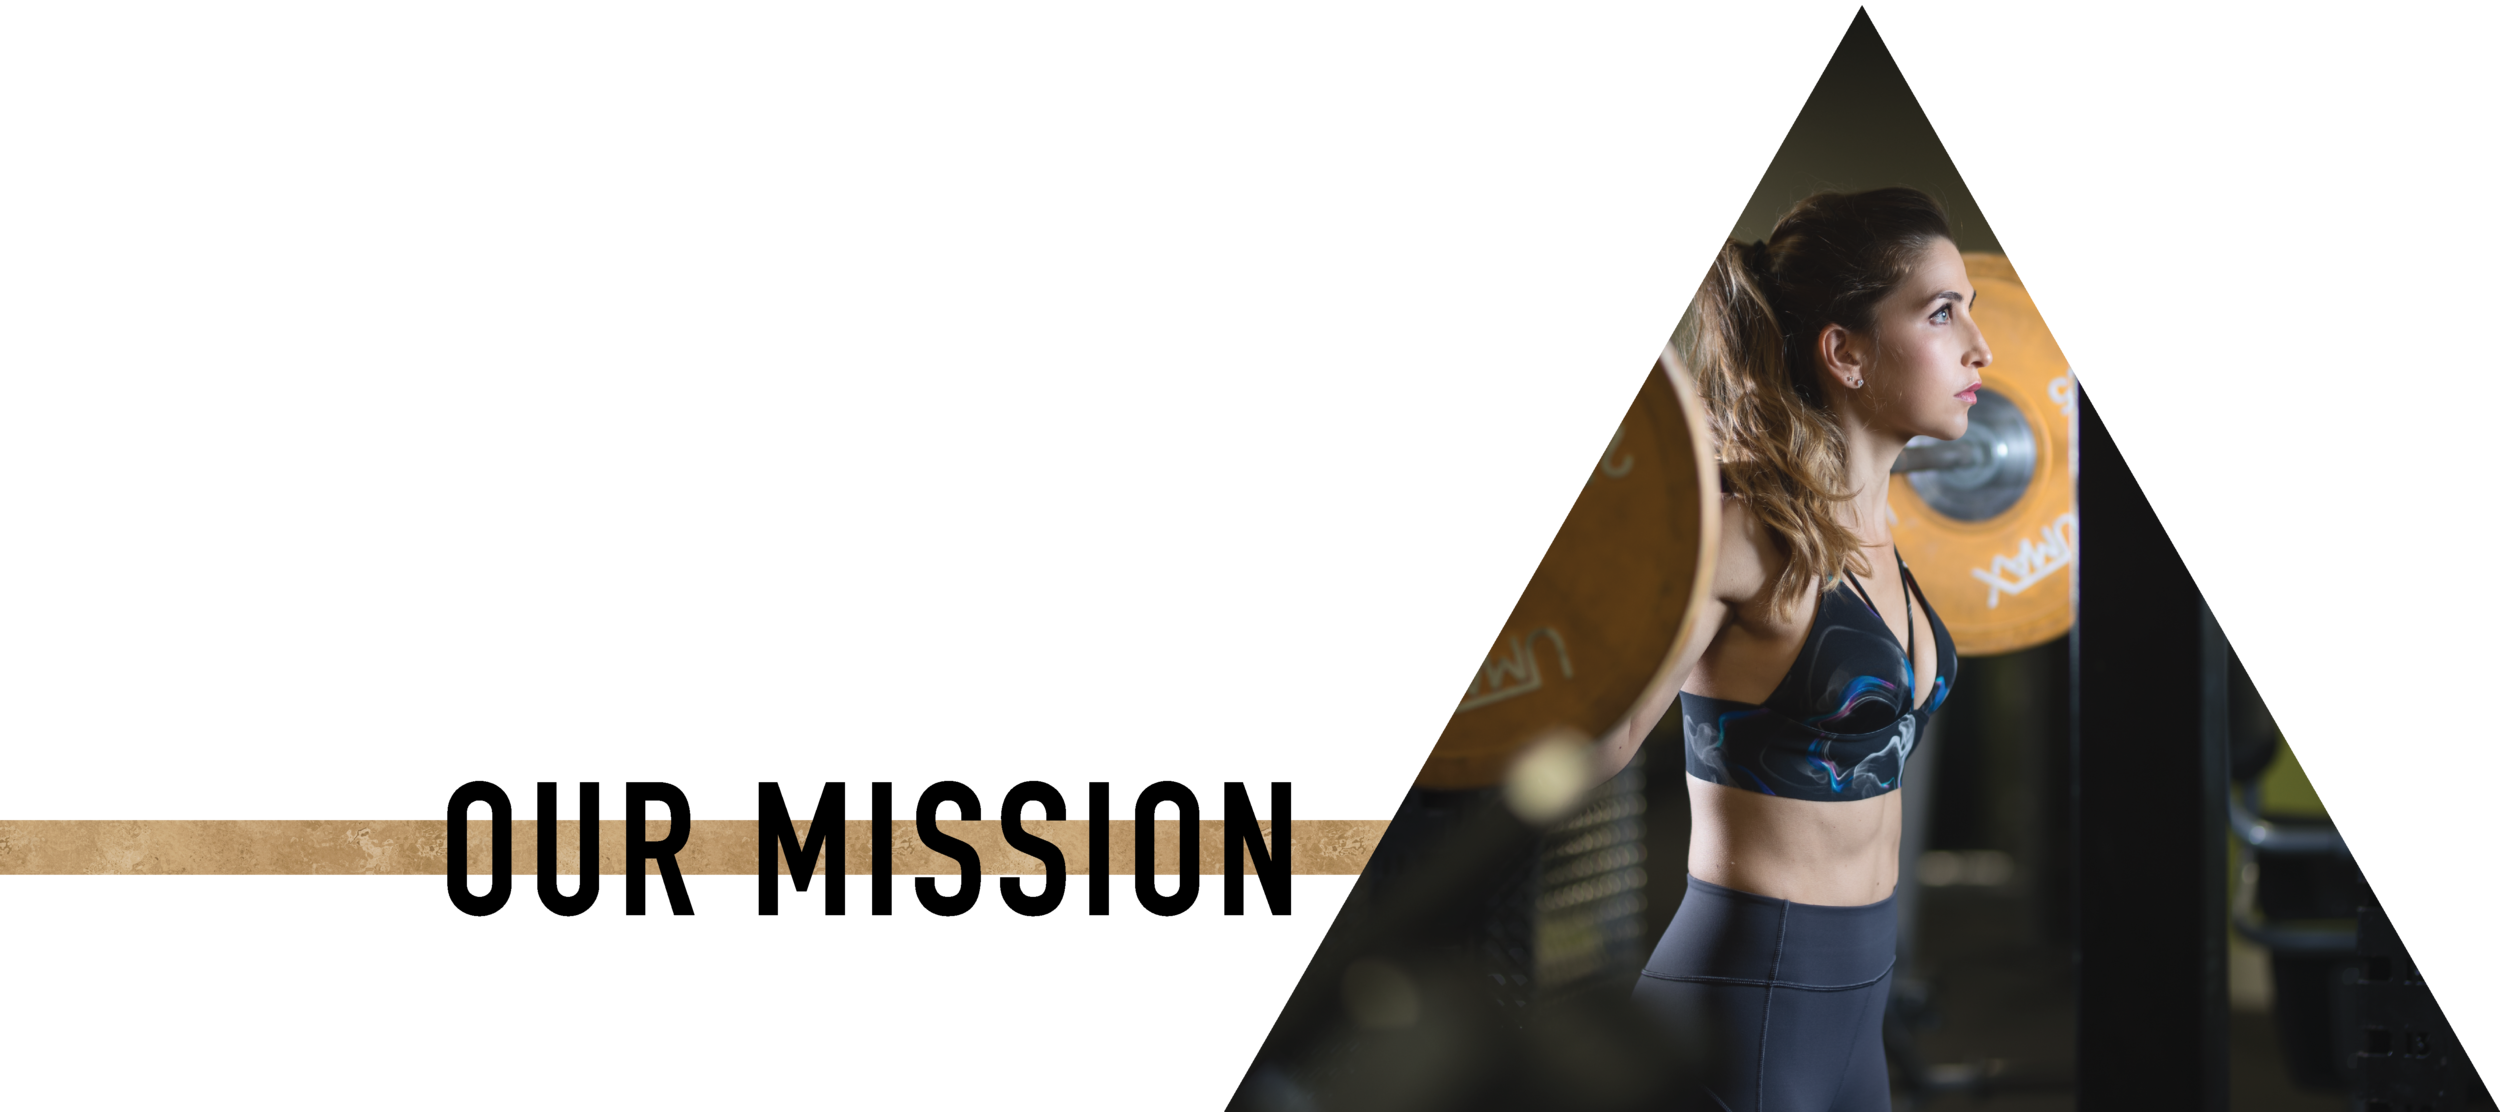 ABOUT_mission_header-14.png